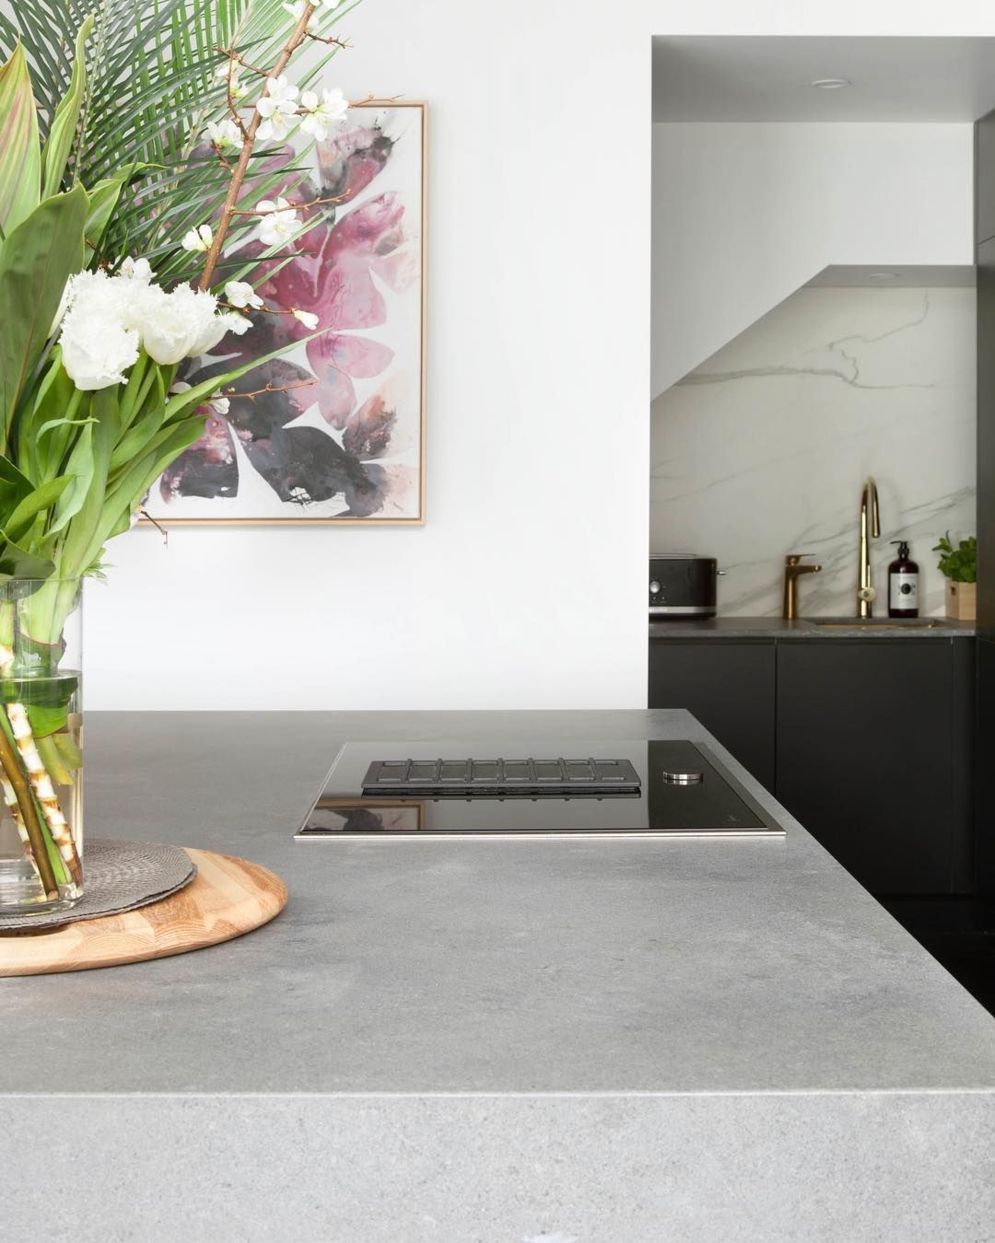 Modern kitchen updates using efficient concrete benchtops to show sturdier interior display Image 41